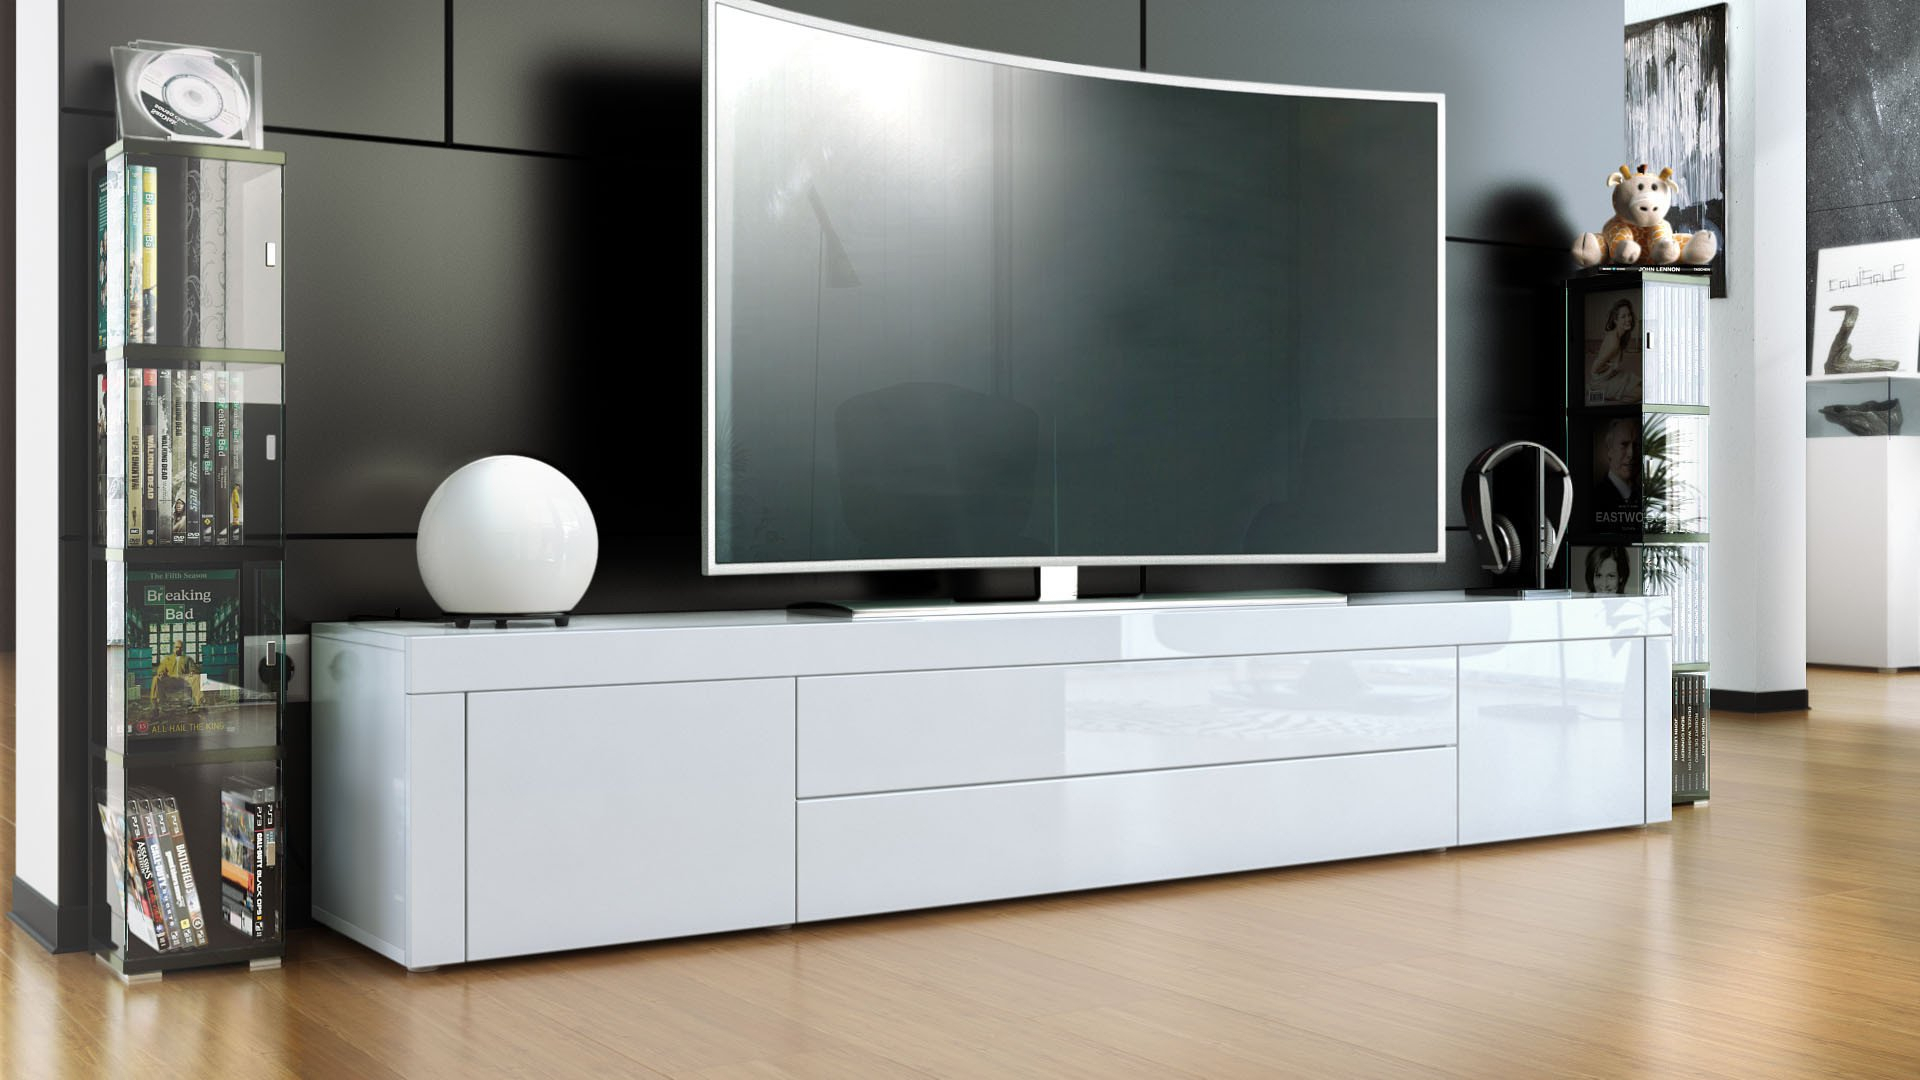 Top 3 Best Entertainment Centers And Tv Stands For A 70 Inch Tv Within Oxford 70 Inch Tv Stands (View 4 of 30)